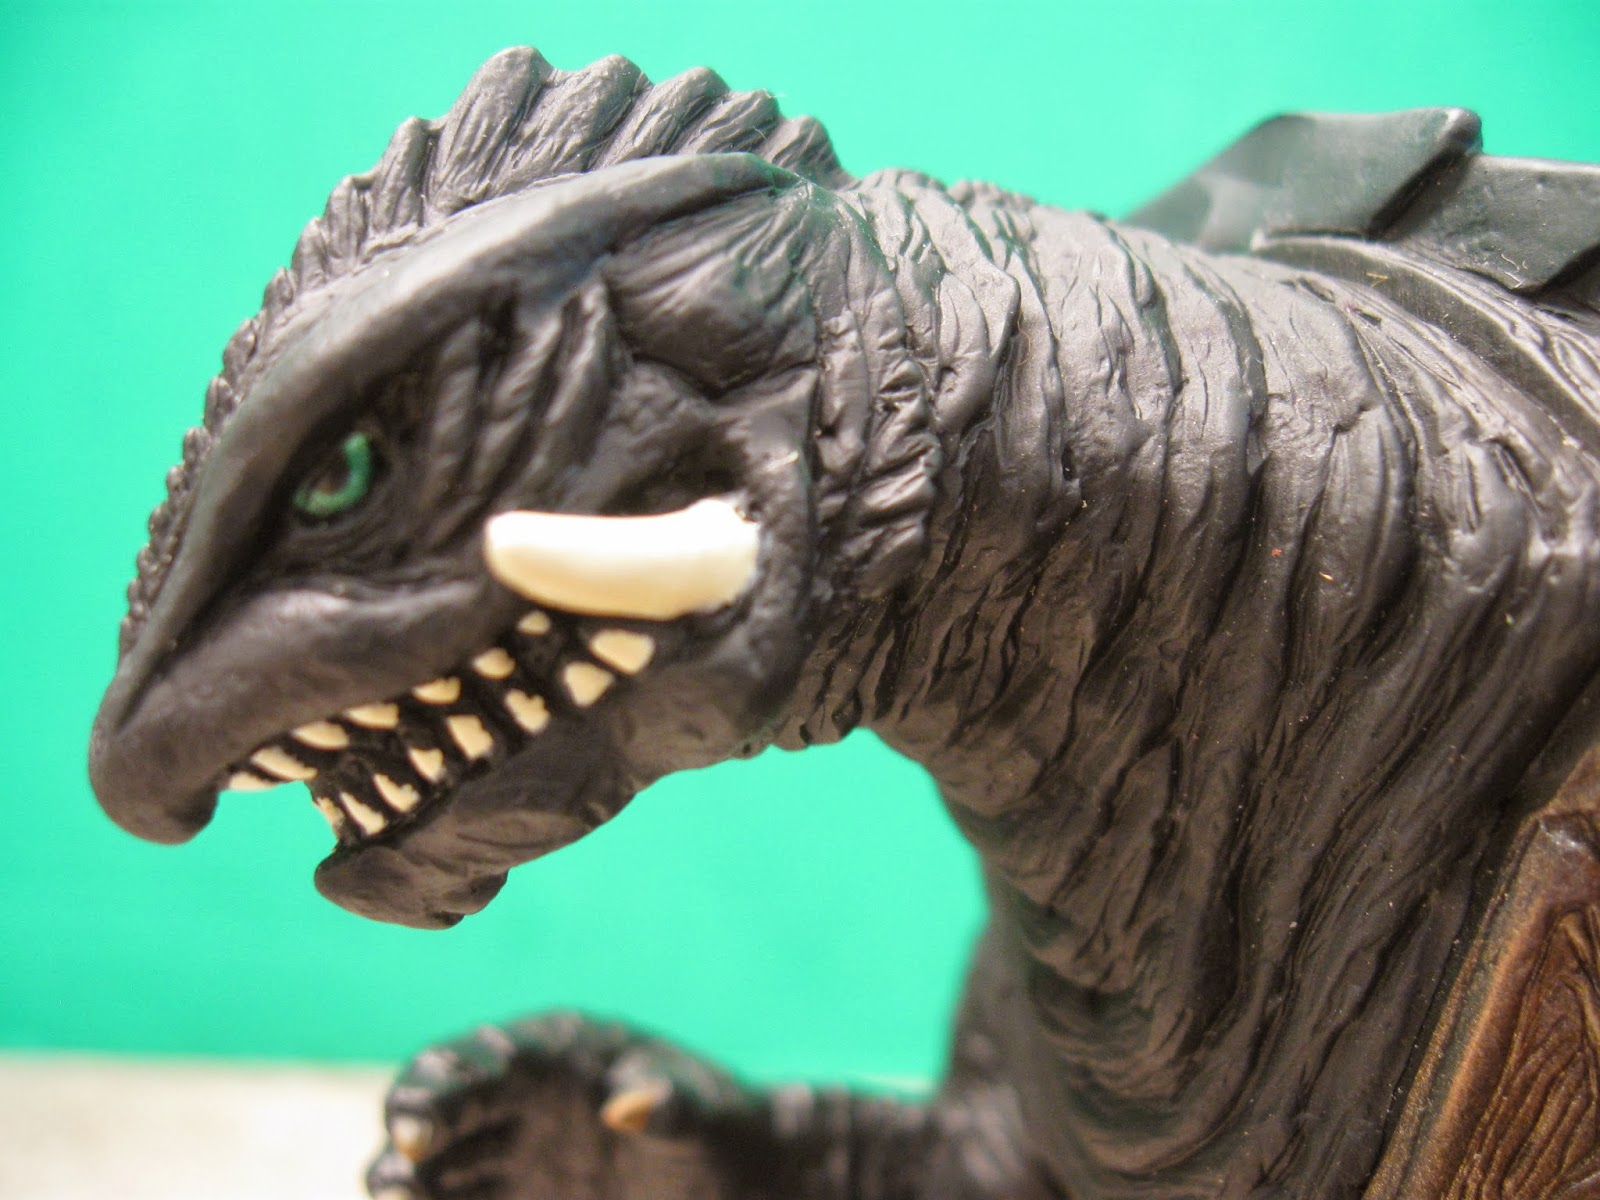 The Toyseum Gamera Bandai Vinyl